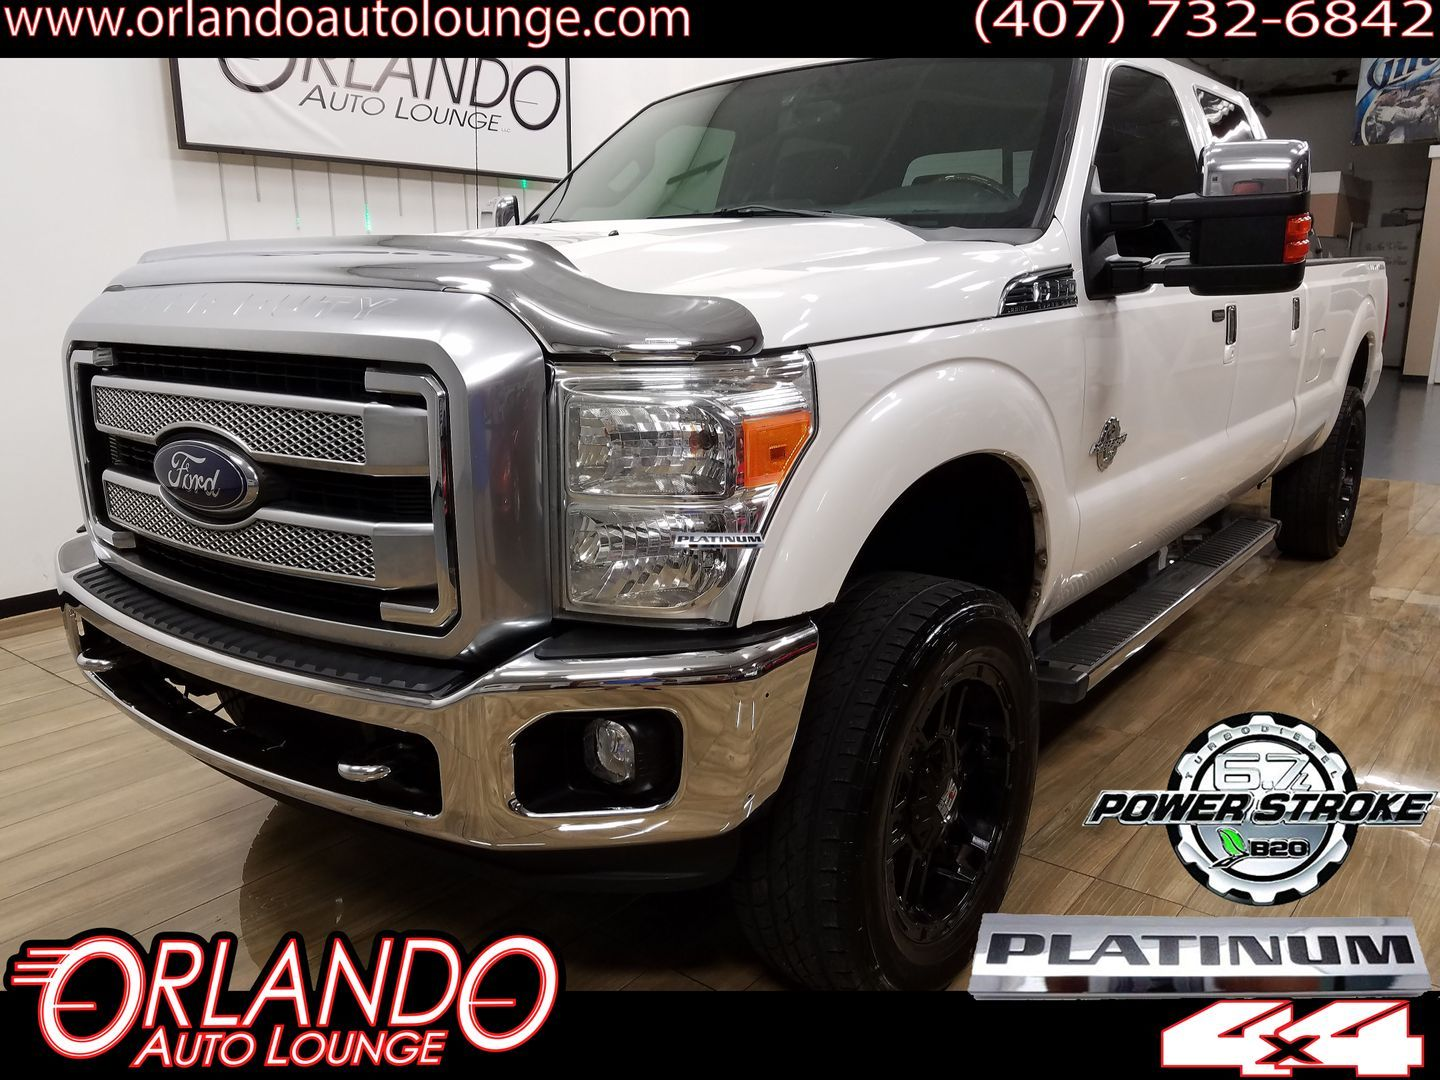 2015 Ford F350 Super Duty Crew Cab Platinum In 2020 Ford F350